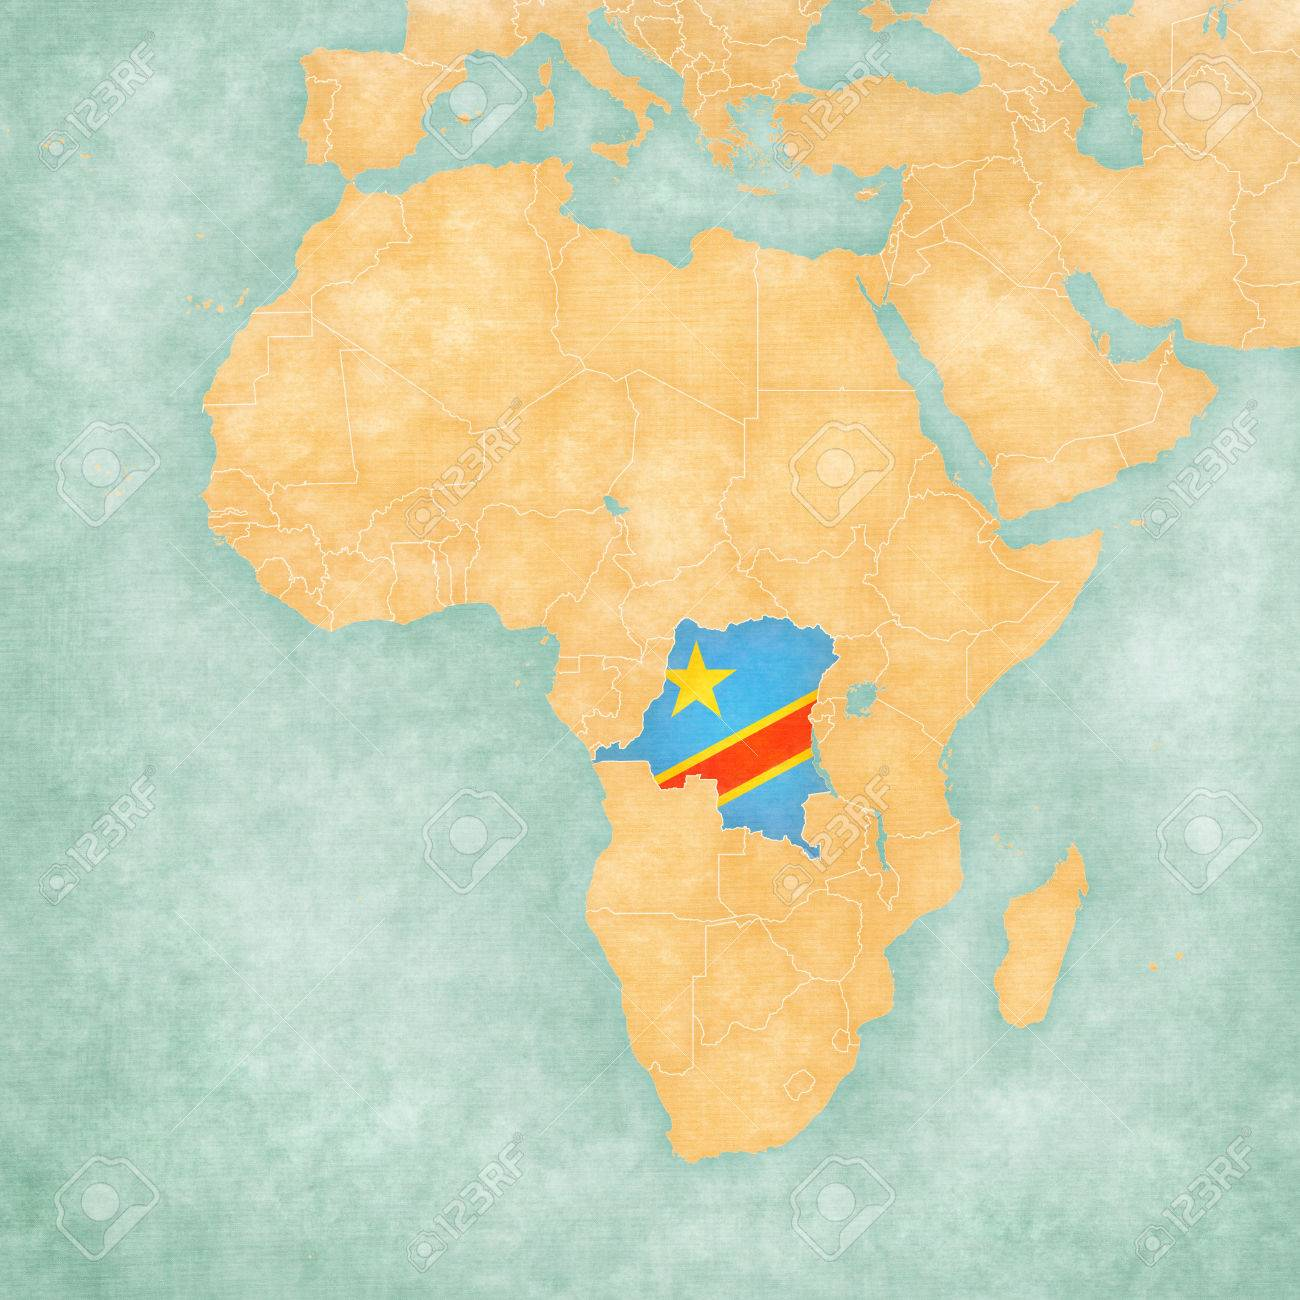 The Democratic Republic of the Congo (Congolese flag) on the